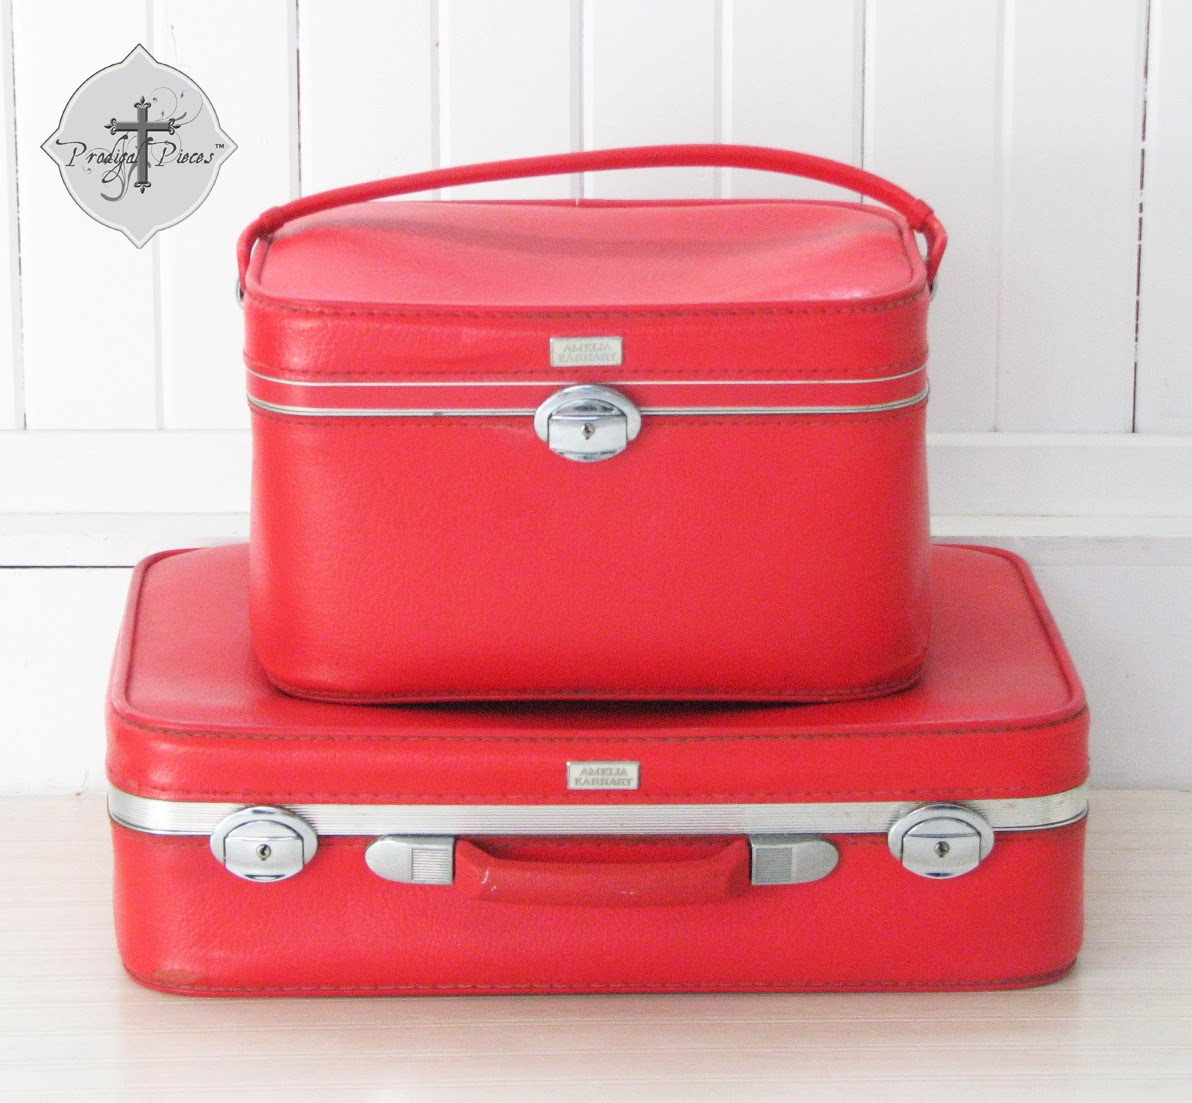 Vintage Red Amelia Earhart Toiletry/ Makeup Box & Suitcase Set via Prodigal Pieces